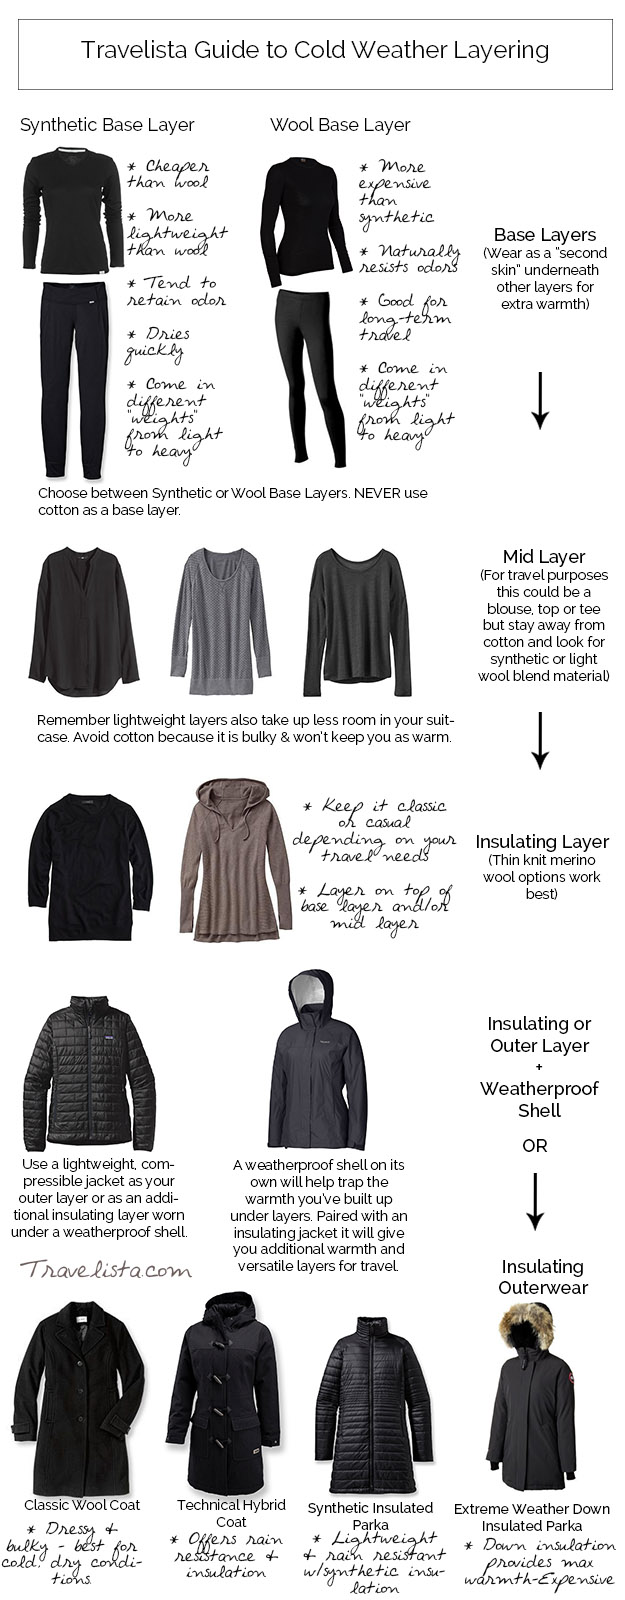 Clothes Tips to Use in Lawn(in Cold Weather)